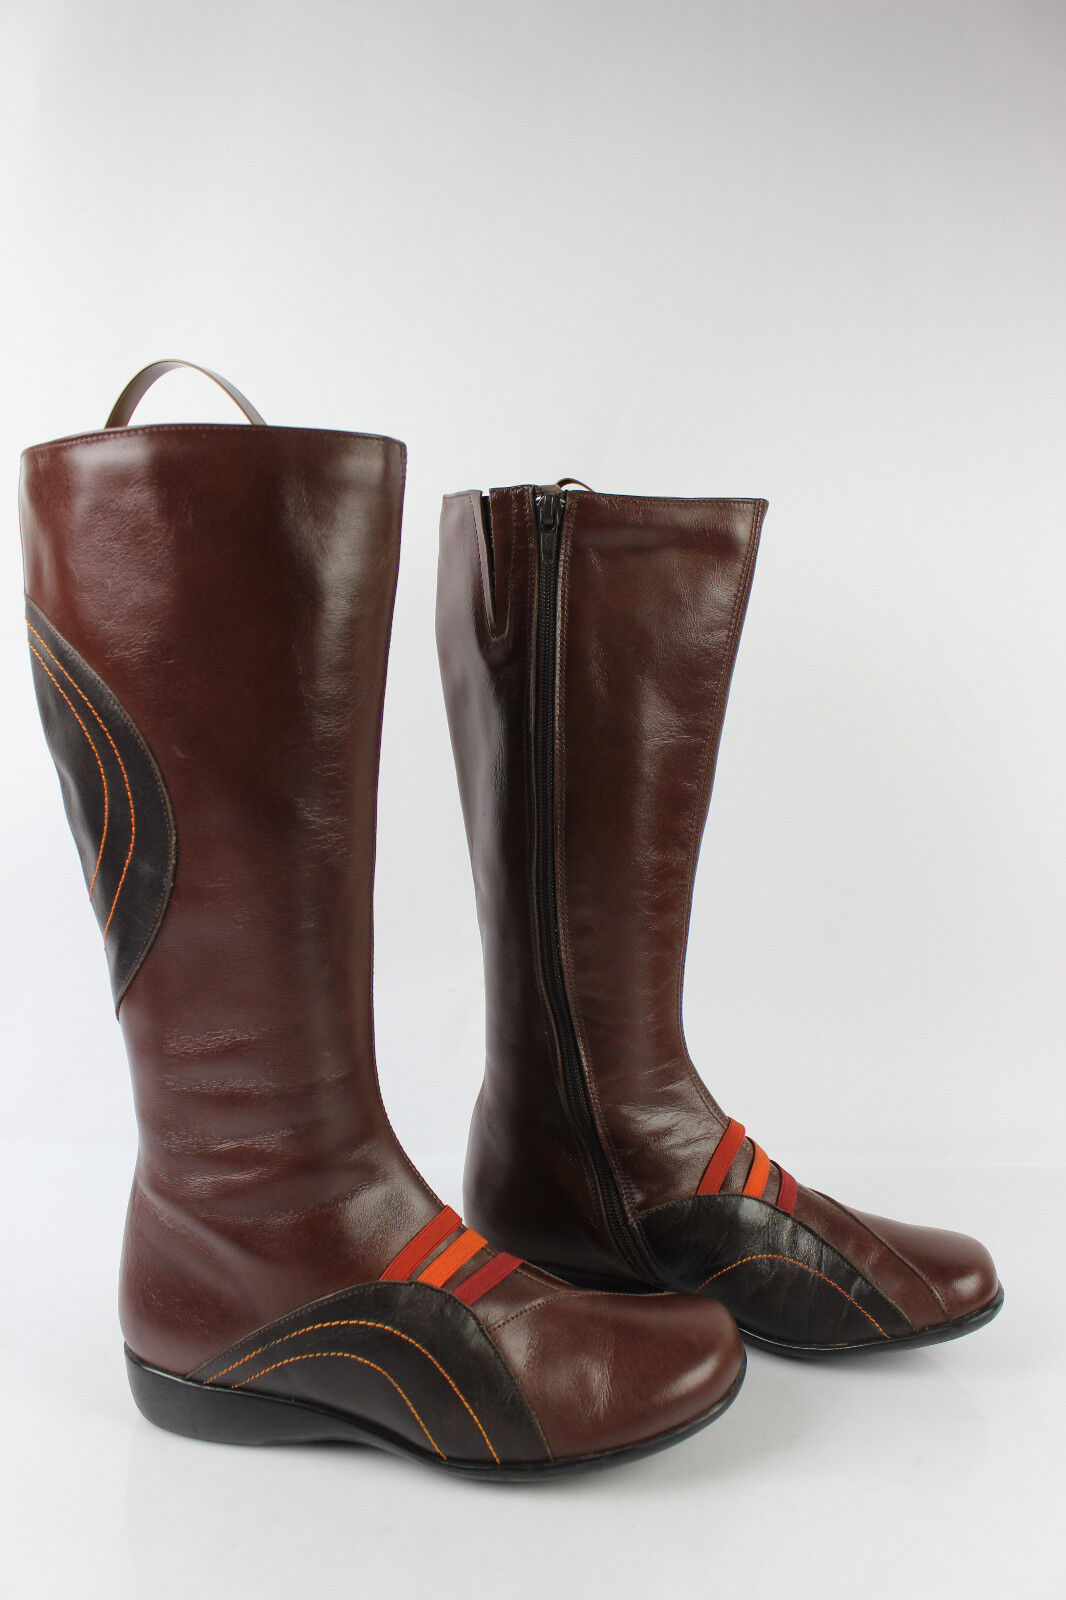 Boots MARETTI   Pomares Vasquez Brown Leather Chestnut T 36 VERY GOOD CONDITION